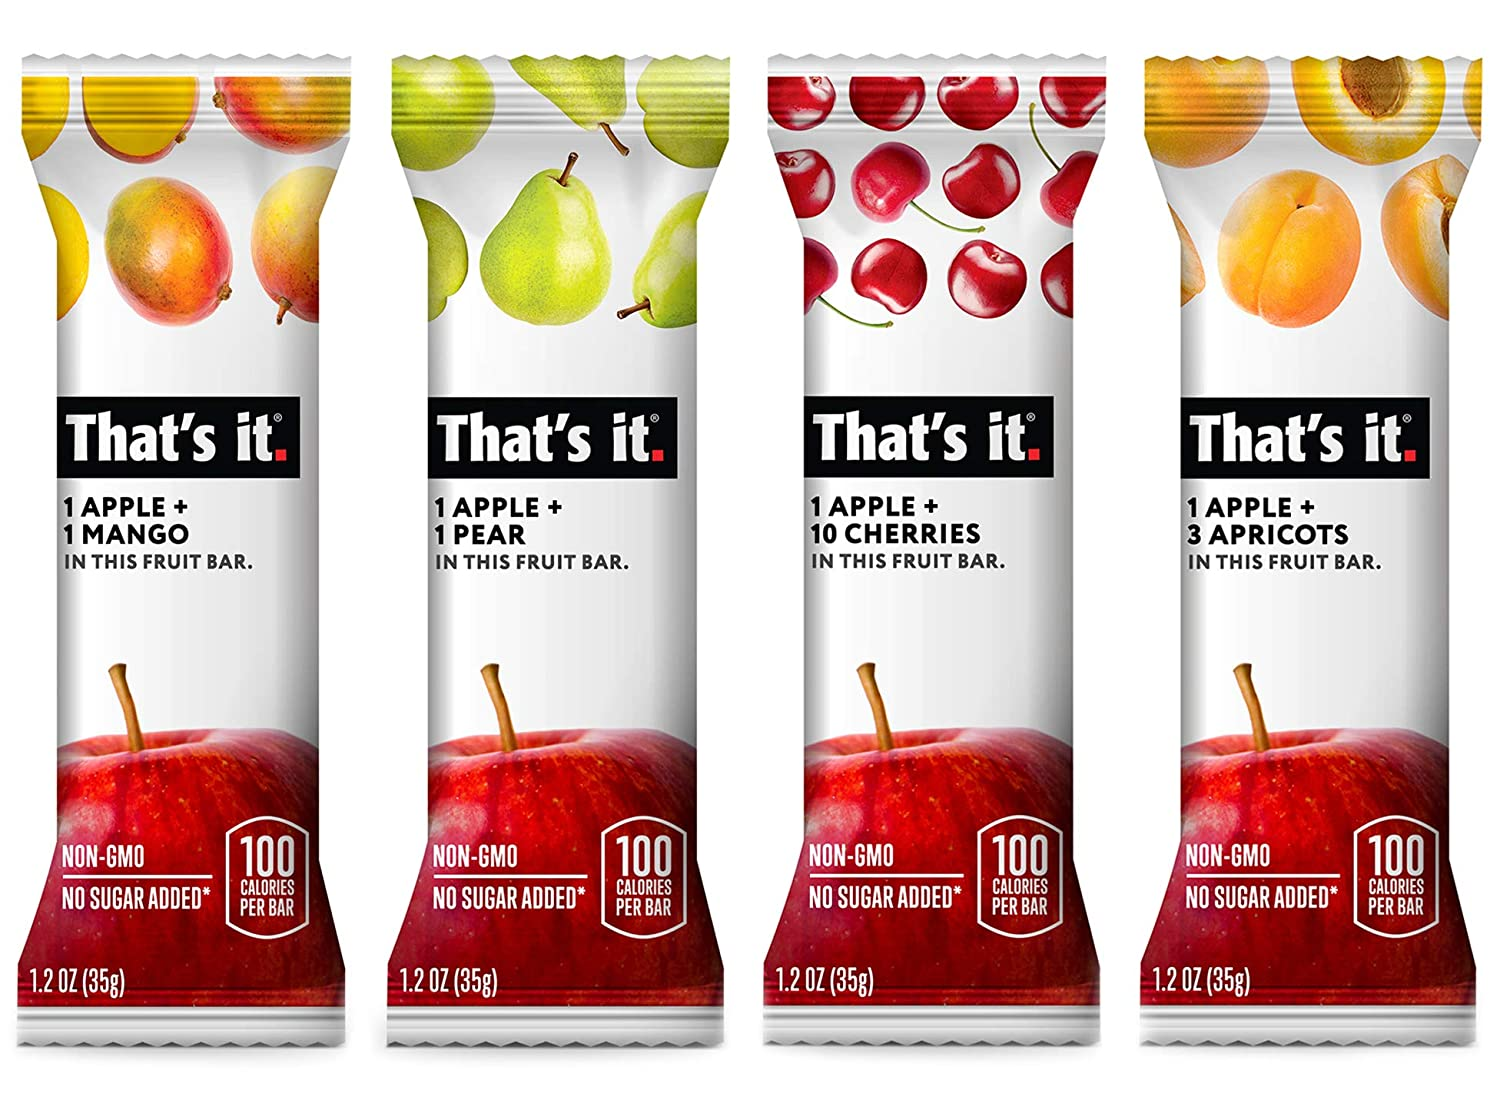 That's it. Variety Pack-1, 100% Natural Real Fruit Bar, Best High Fiber Vegan, Gluten Free Healthy Snack, Paleo for Children & Adults, Non GMO No Added Sugar, No Preservatives Energy Food (36 Pack)